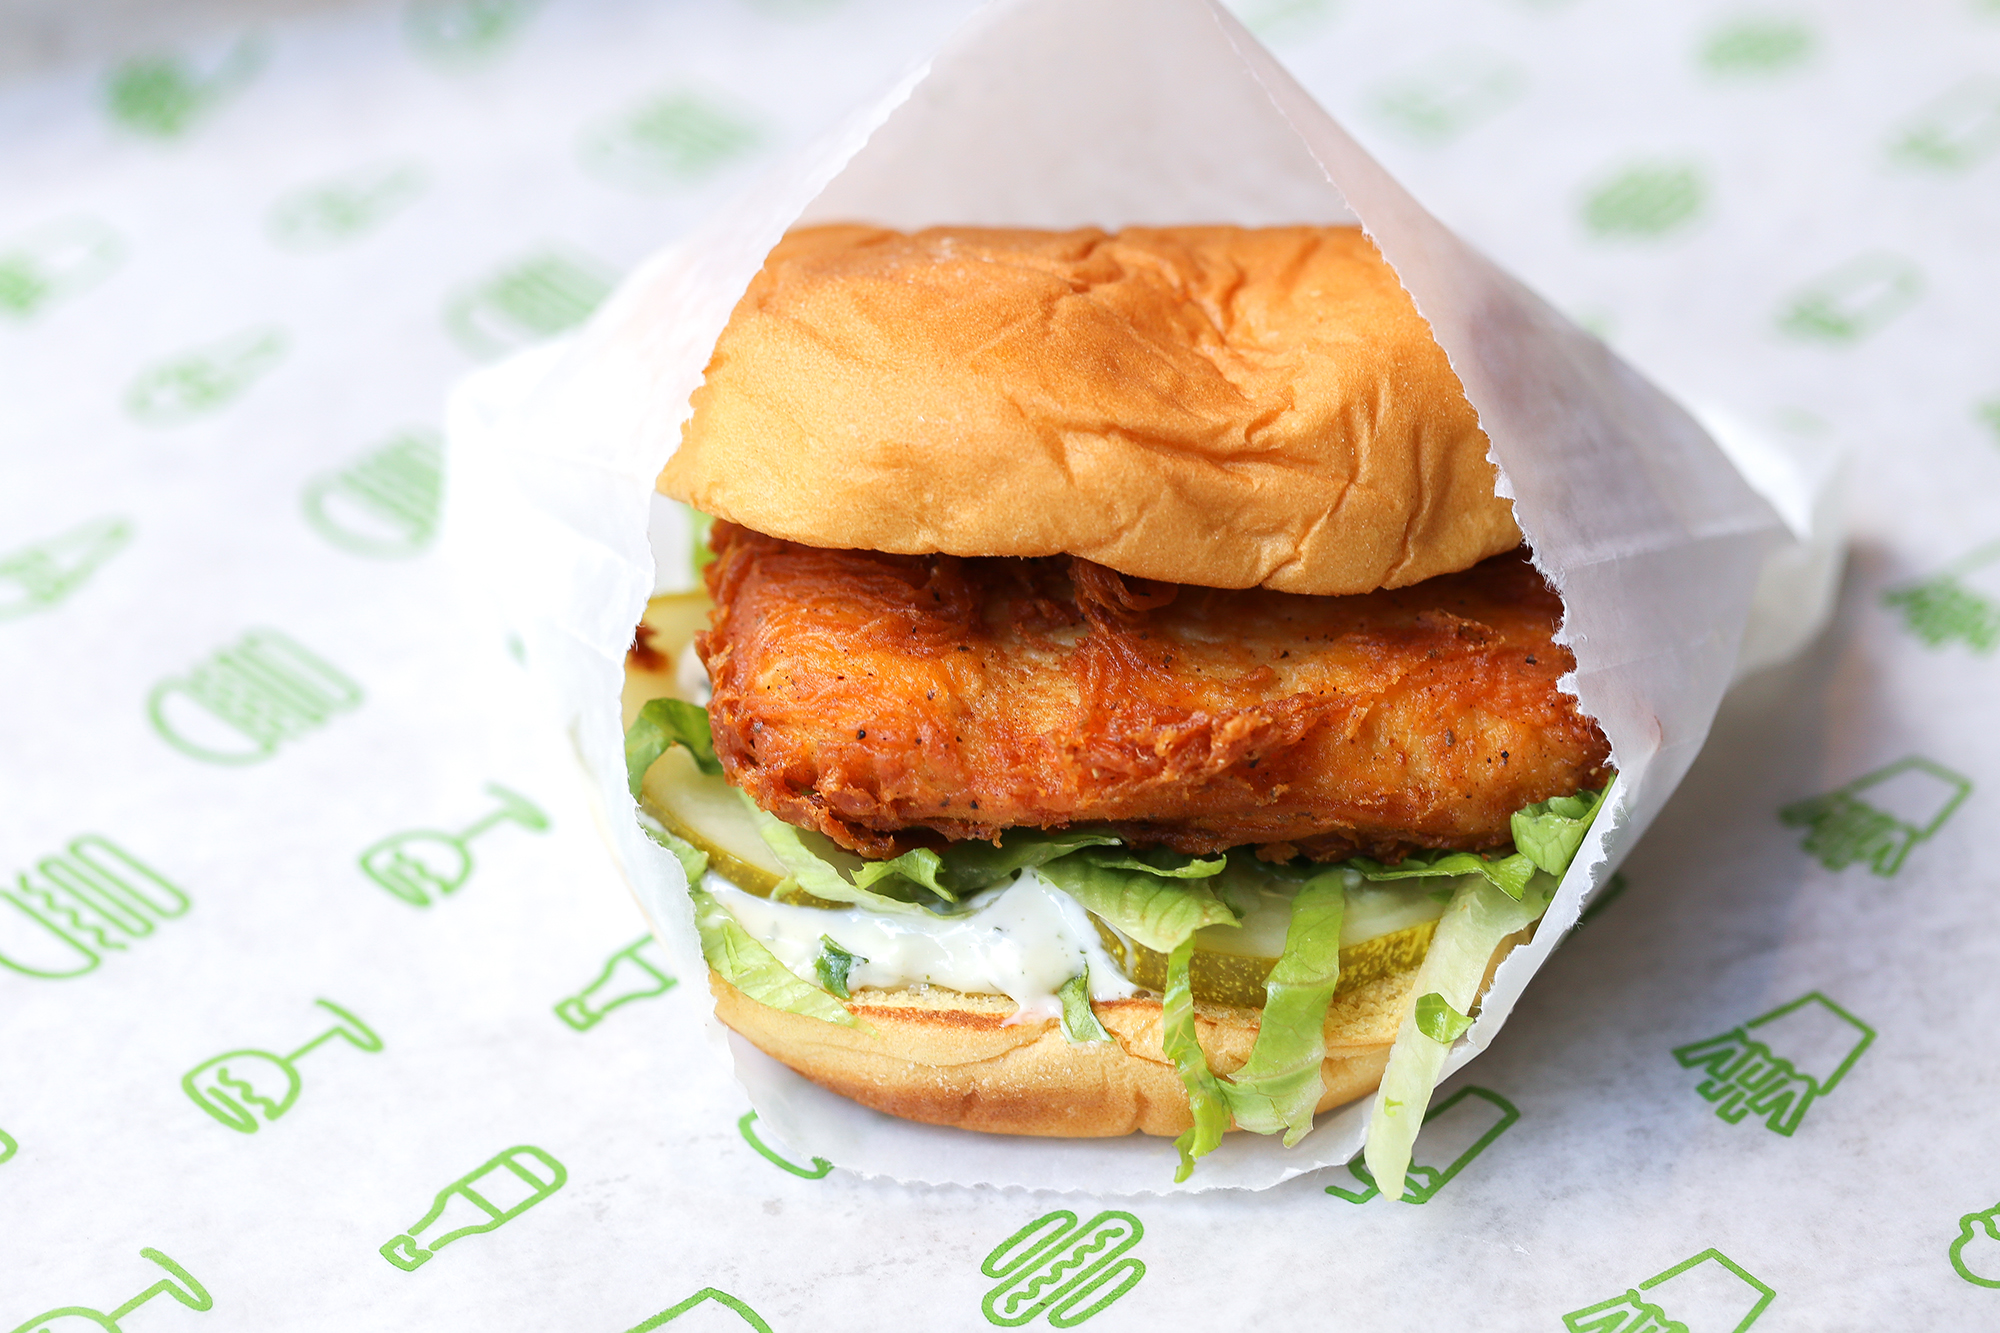 Chick'n Shack: crispy chicken breast with lettuce, pickles, and buttermilk herb mayo.